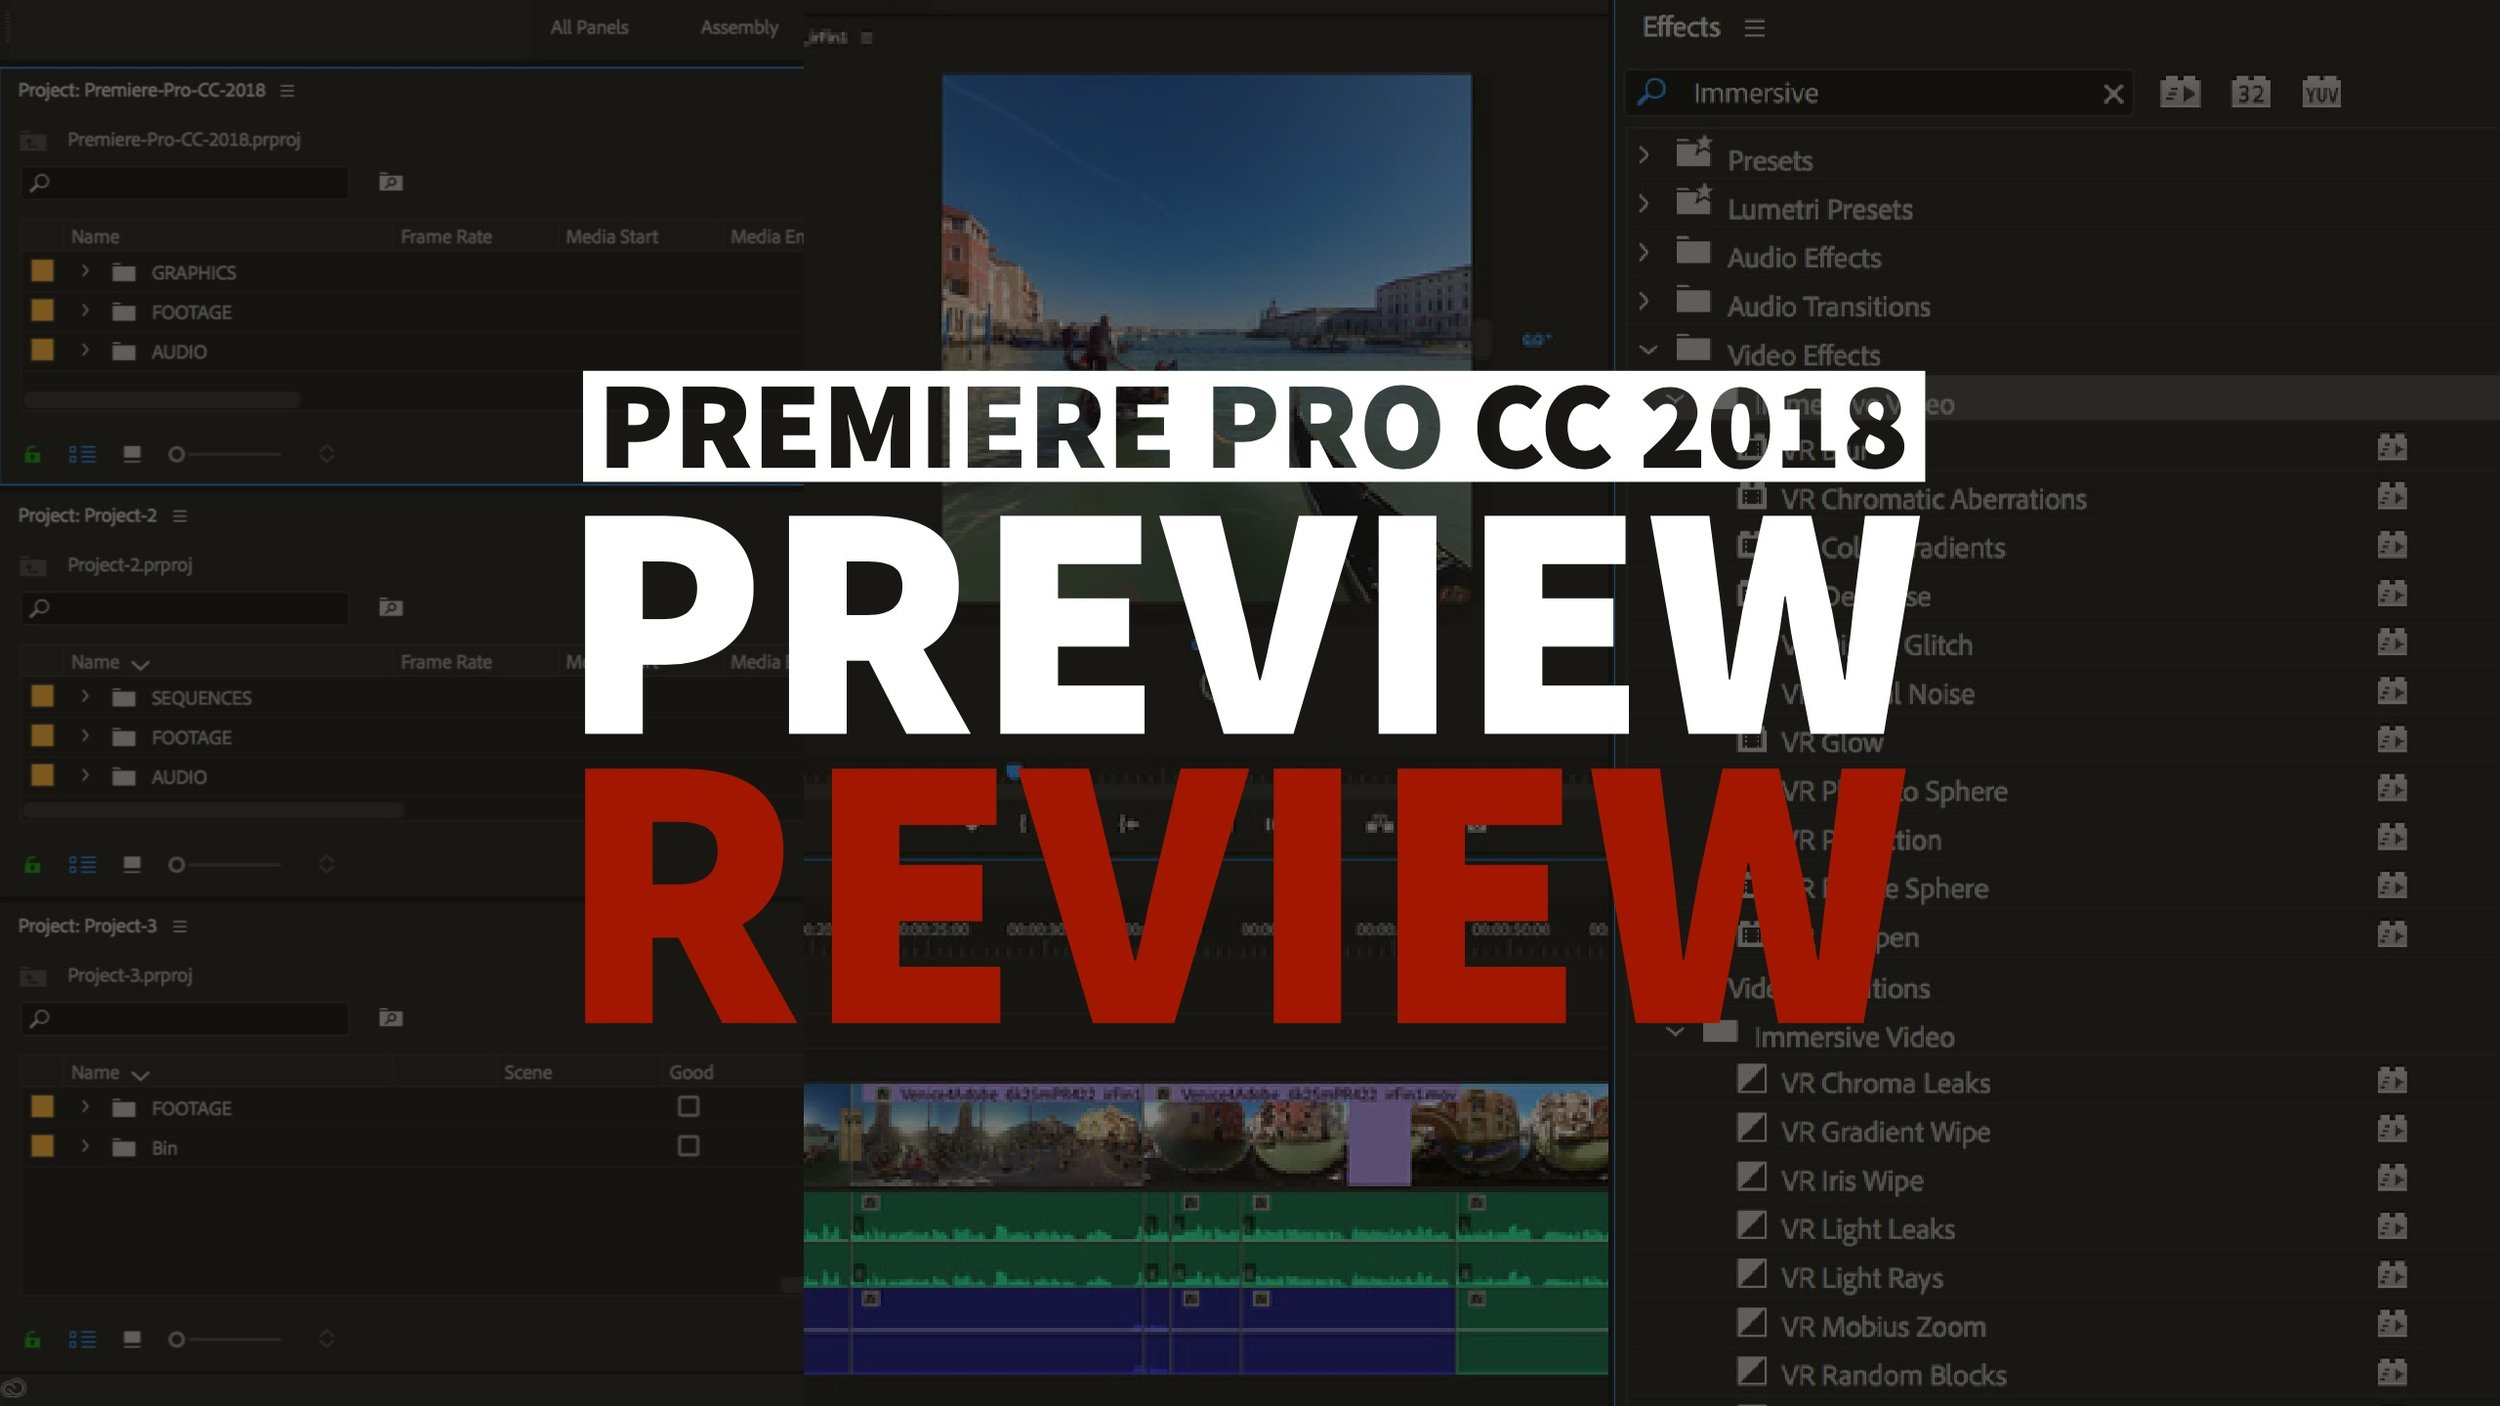 premiere-pro-cc-2018-preview-review.jpg